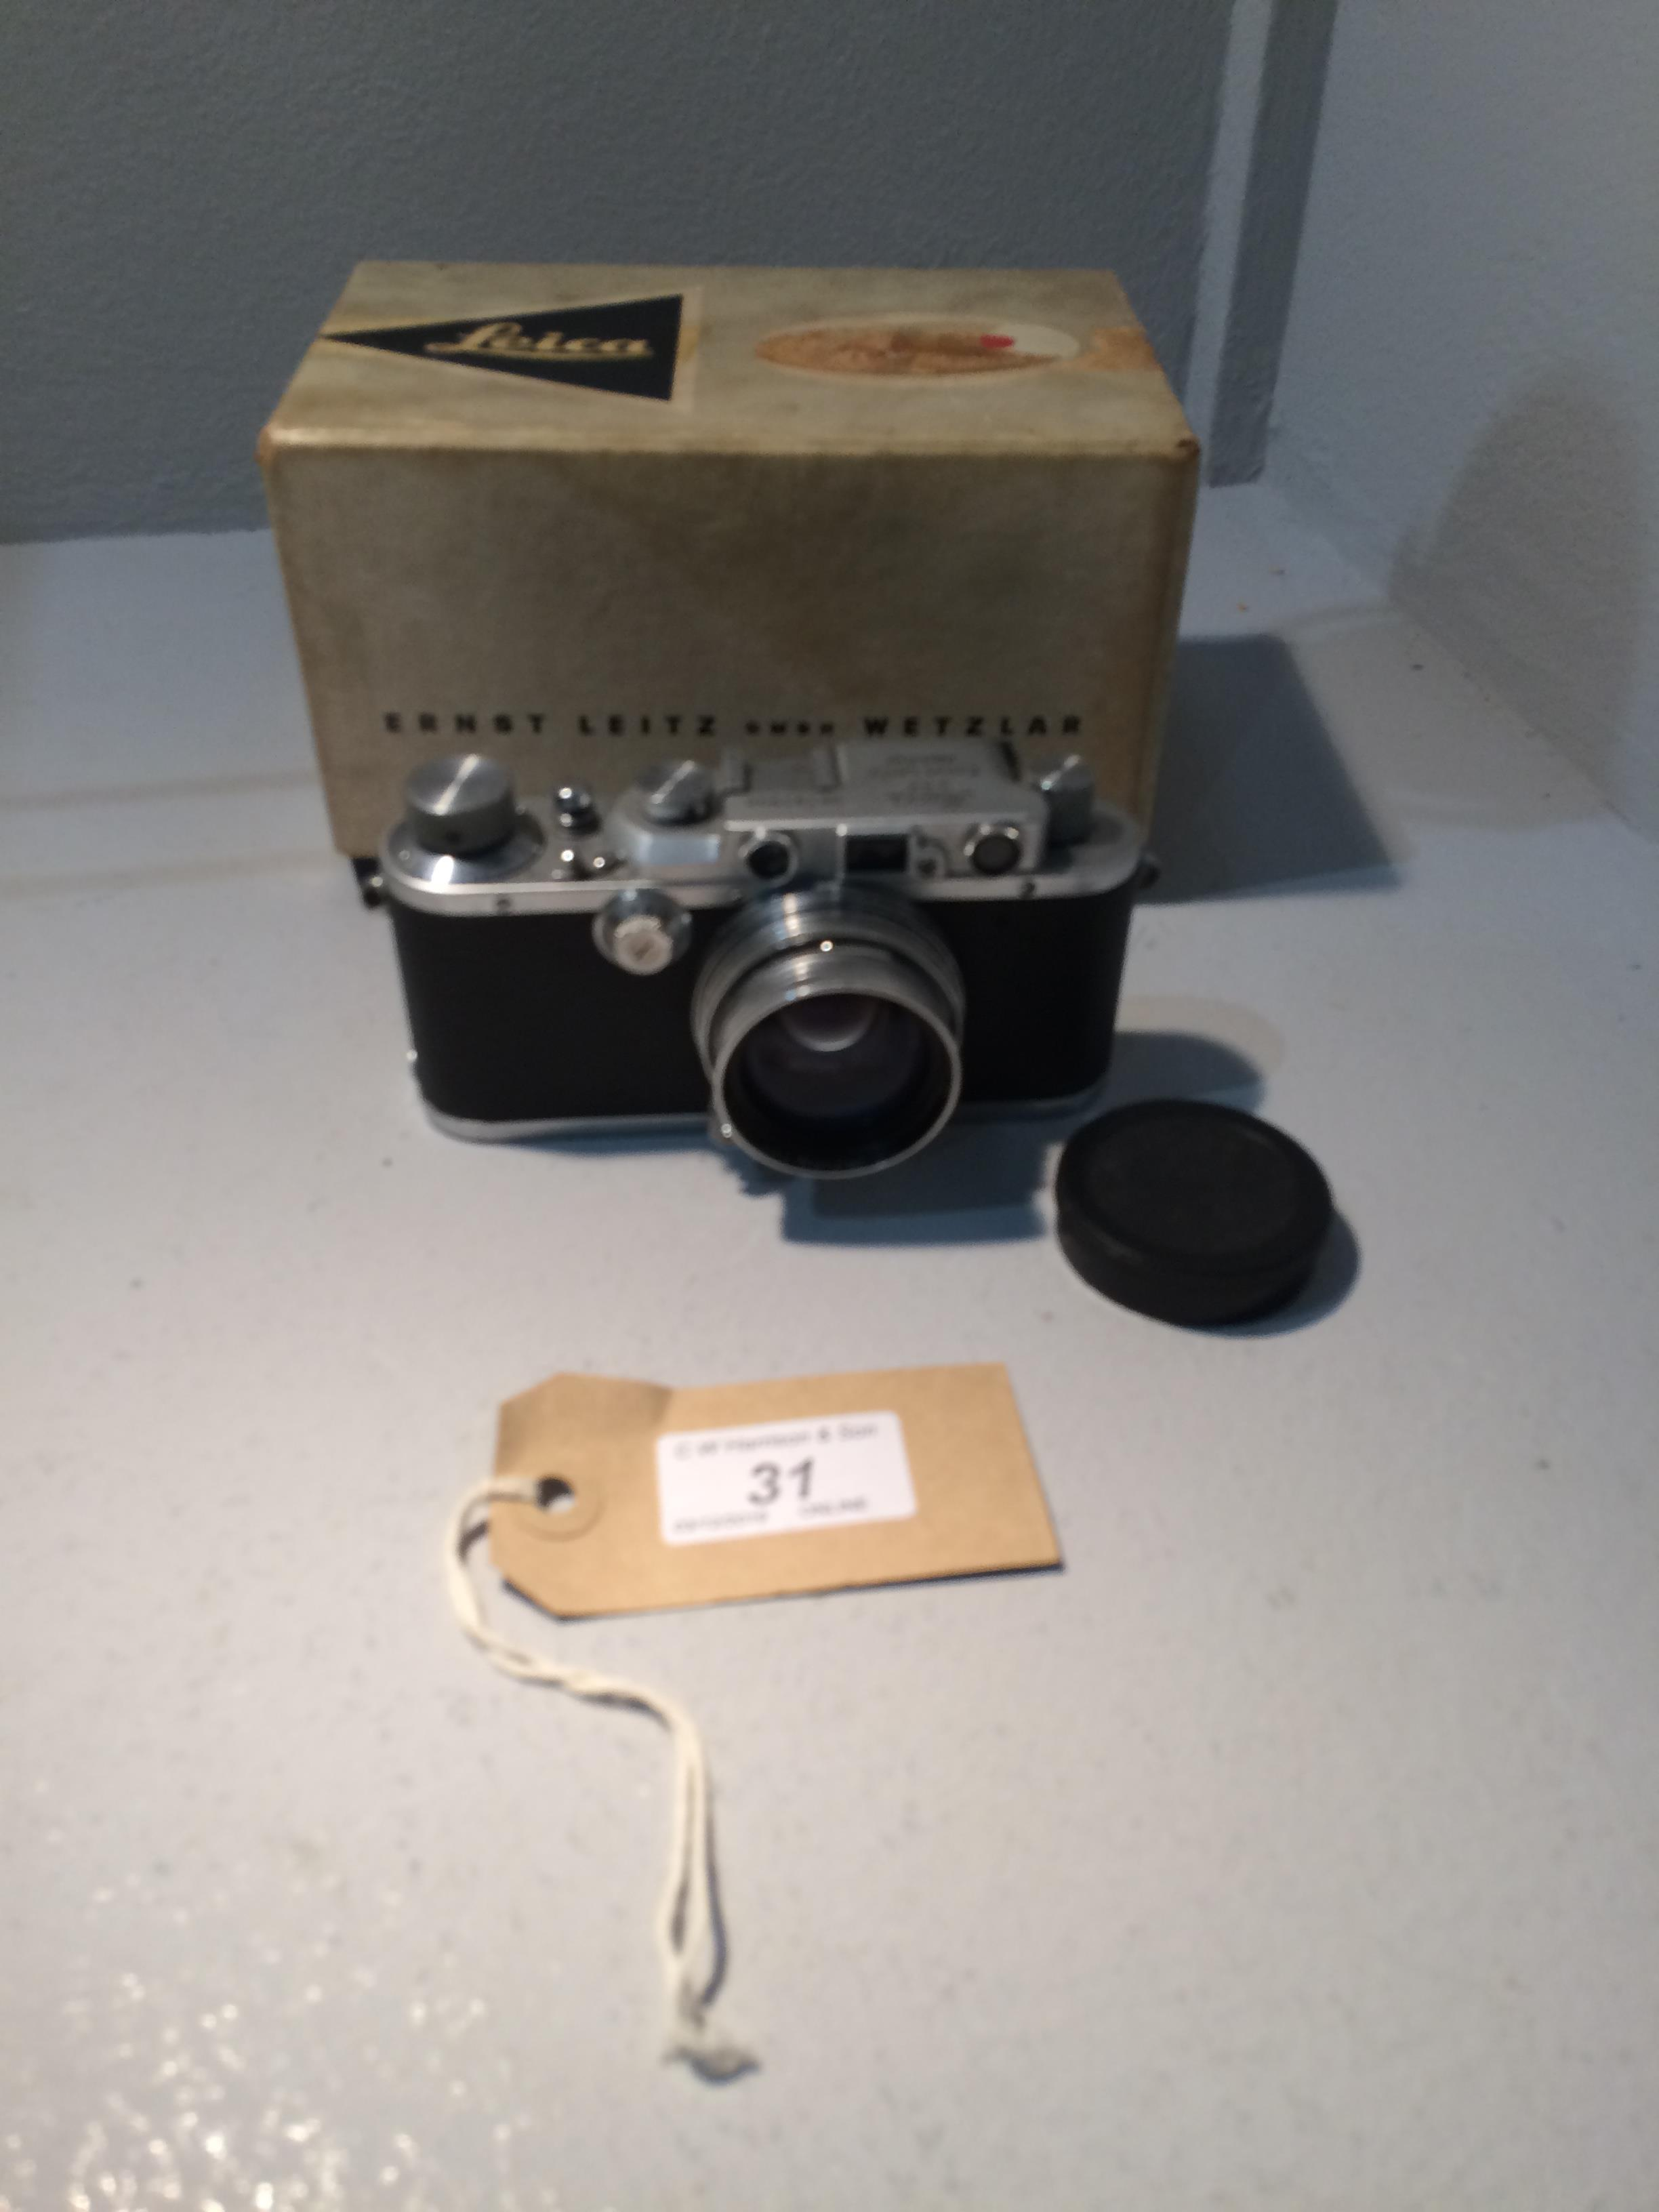 Lot 31 - Leica III - 191998 camera complete with box and manual for a Leica IIIG